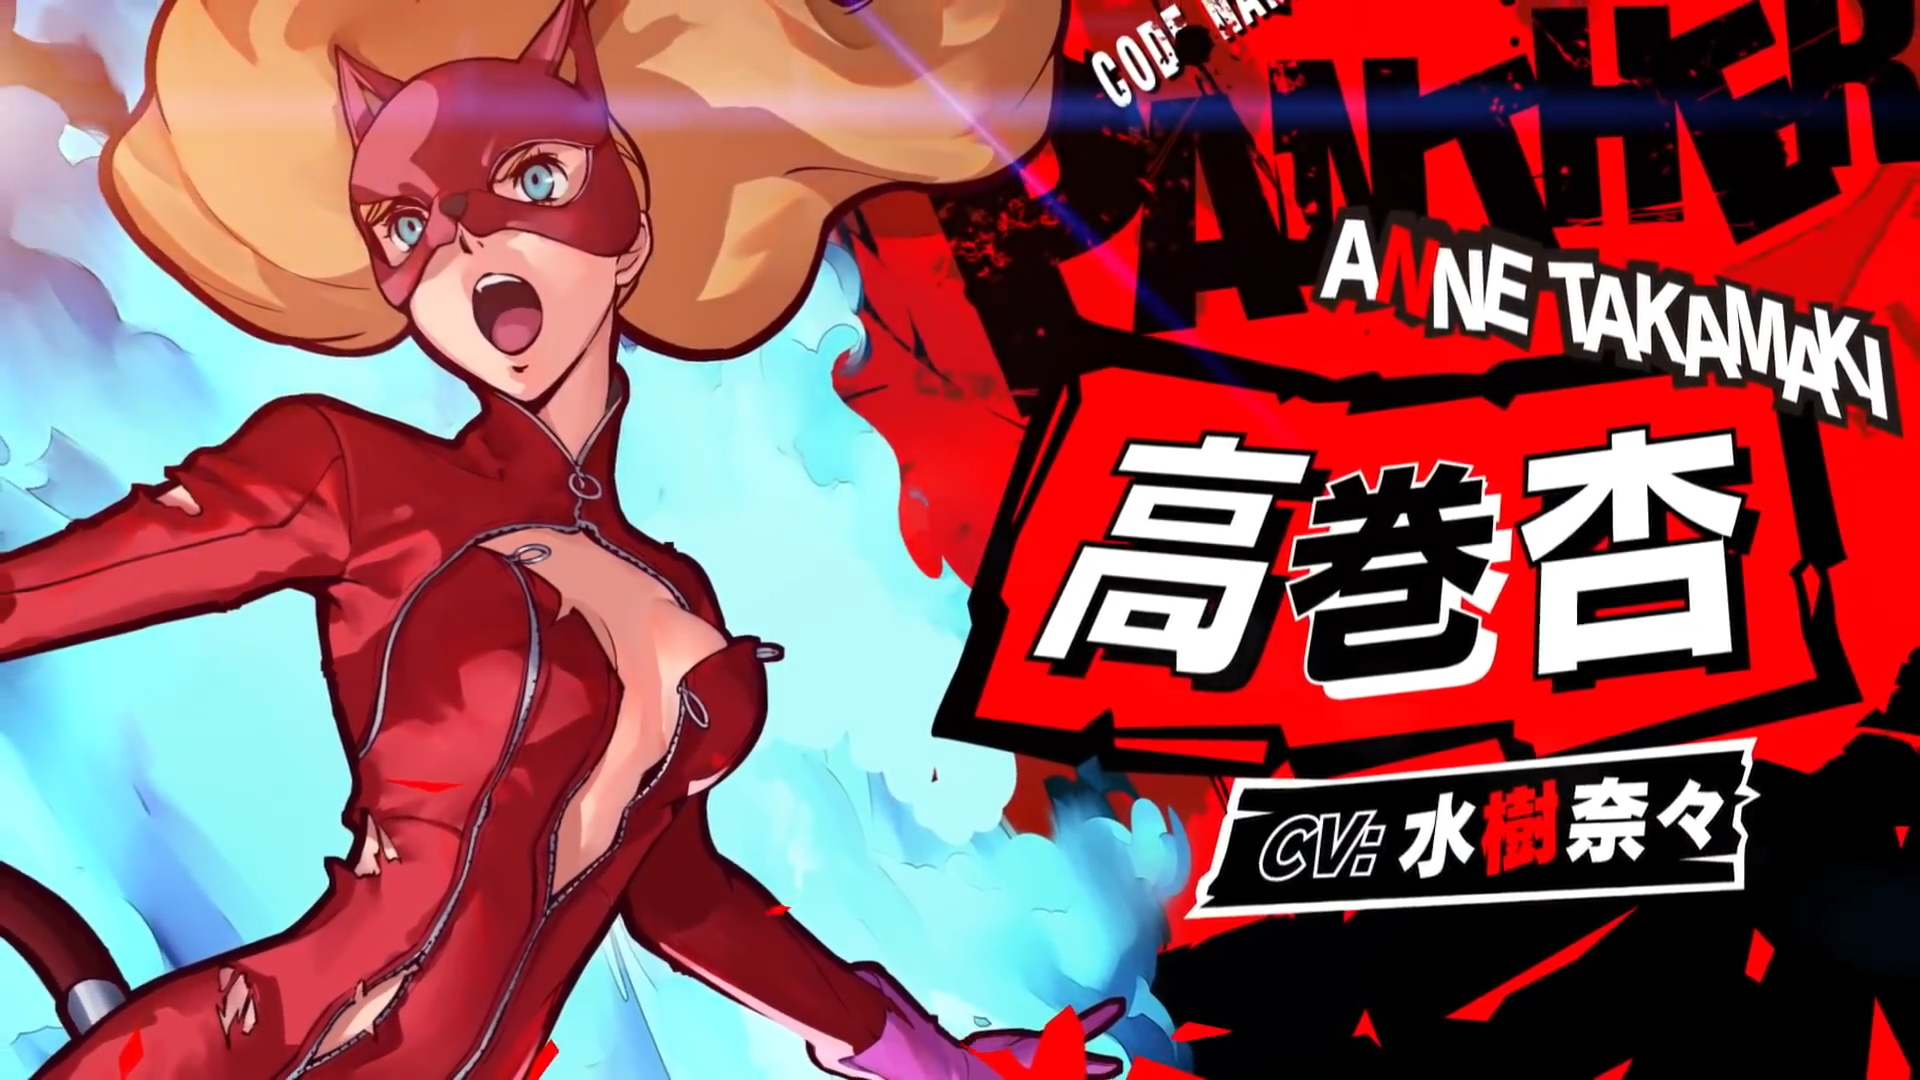 Persona 5 Scramble The Phantom Strikers Introducing Ann Takamaki Eng Sub Trailer Together With Few Extra Gameplay Videos Bunnygaming Com